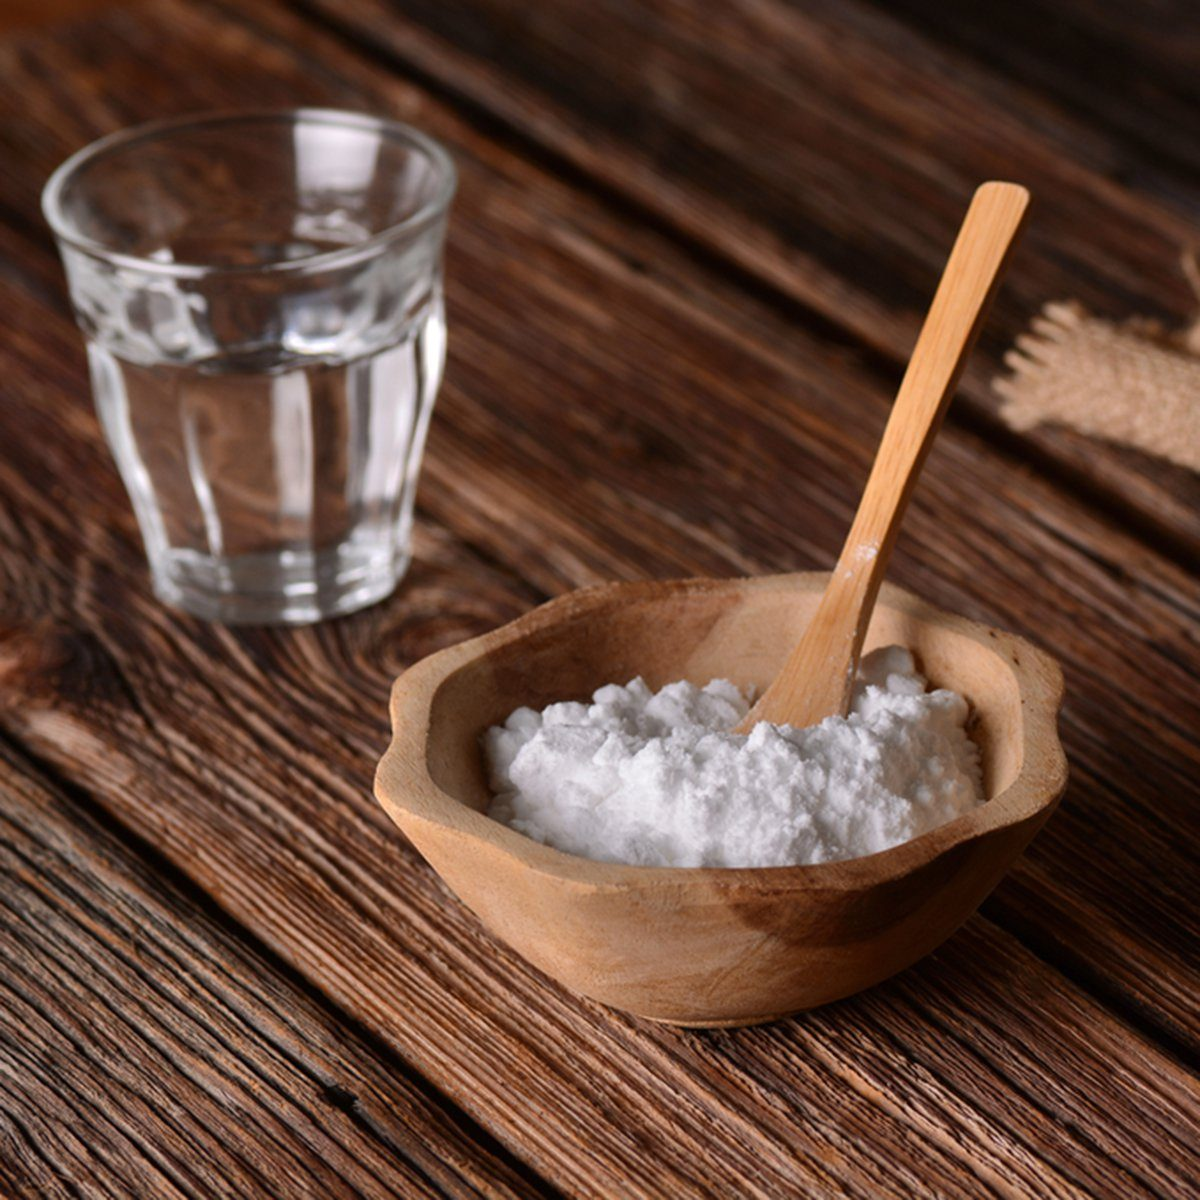 baking soda into the bowl with wooden spoon